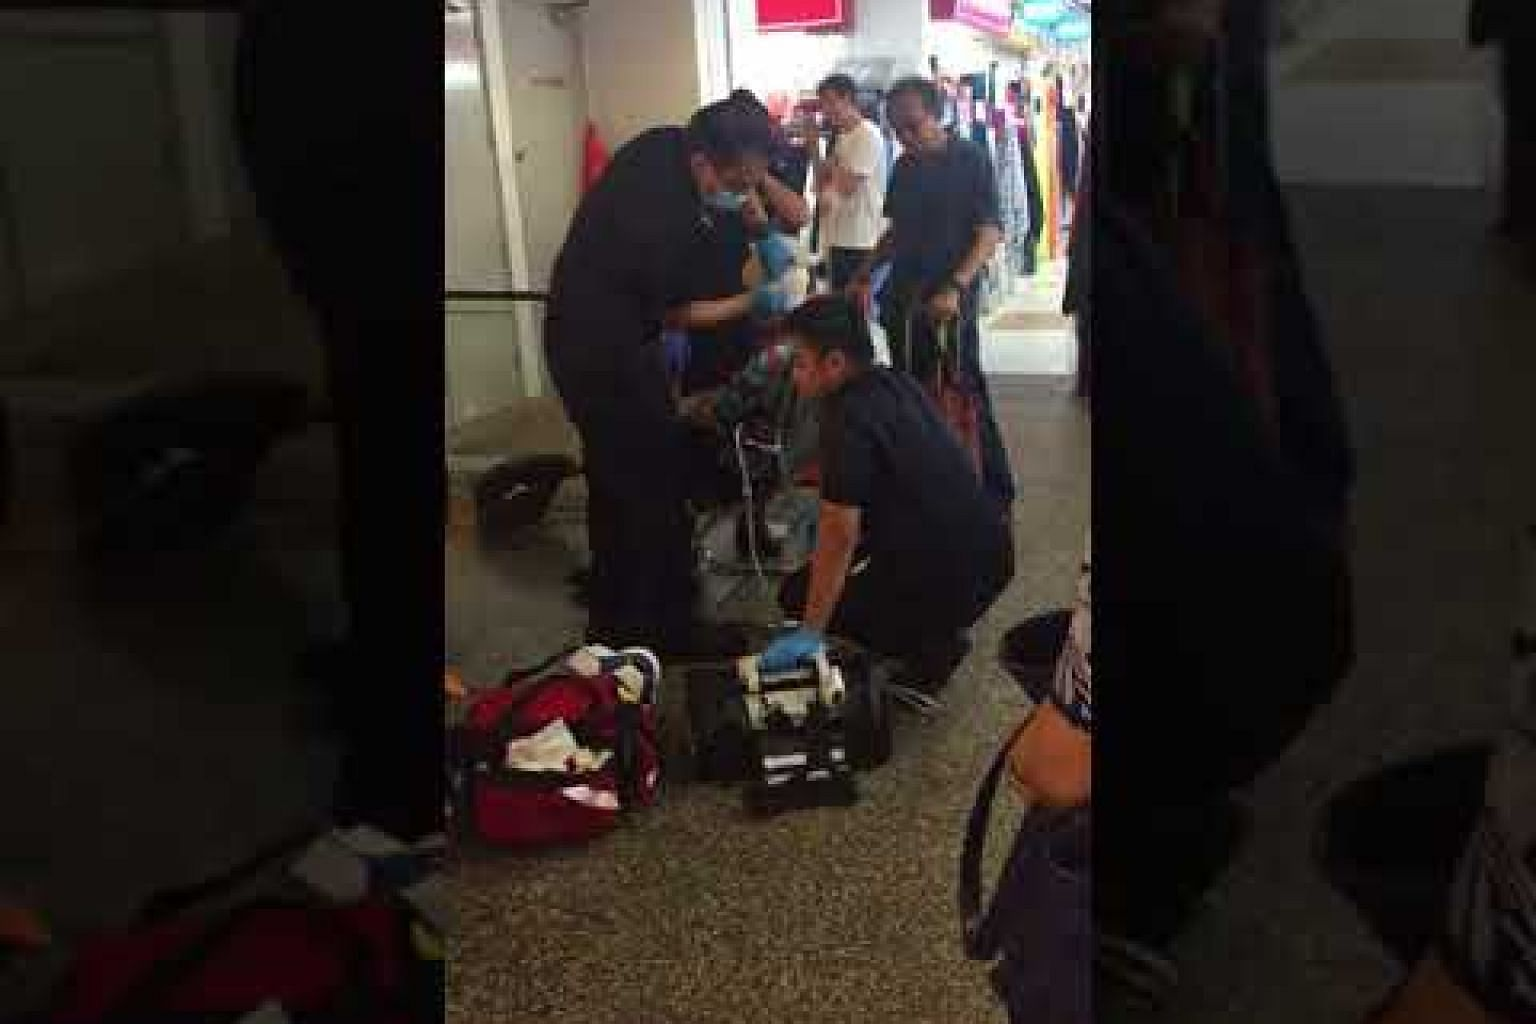 Woman falls at People's Park Complex